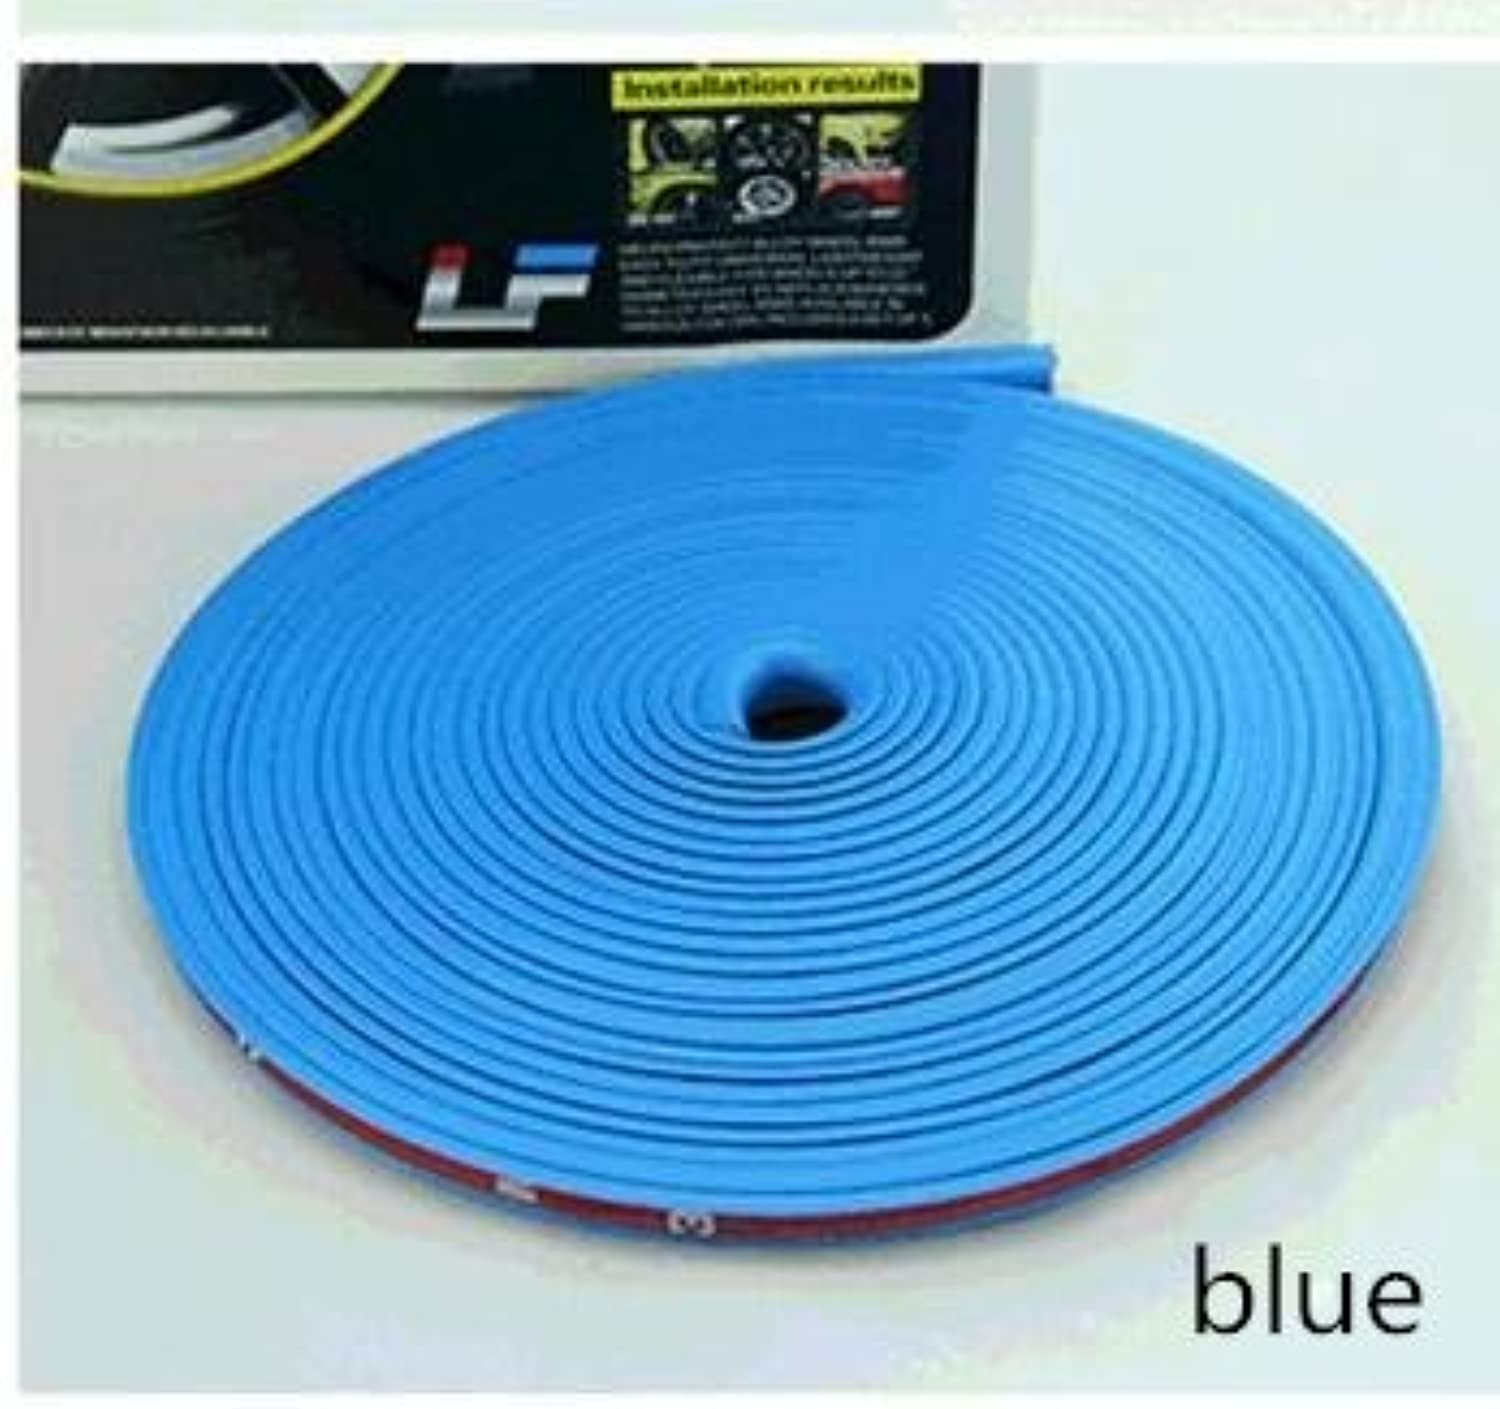 Car Accessories Sticker Wheel Hub Tire Stickers for Dodge ram Charger Journey Challenger Caliber Car Styling  (color Name  blueee)